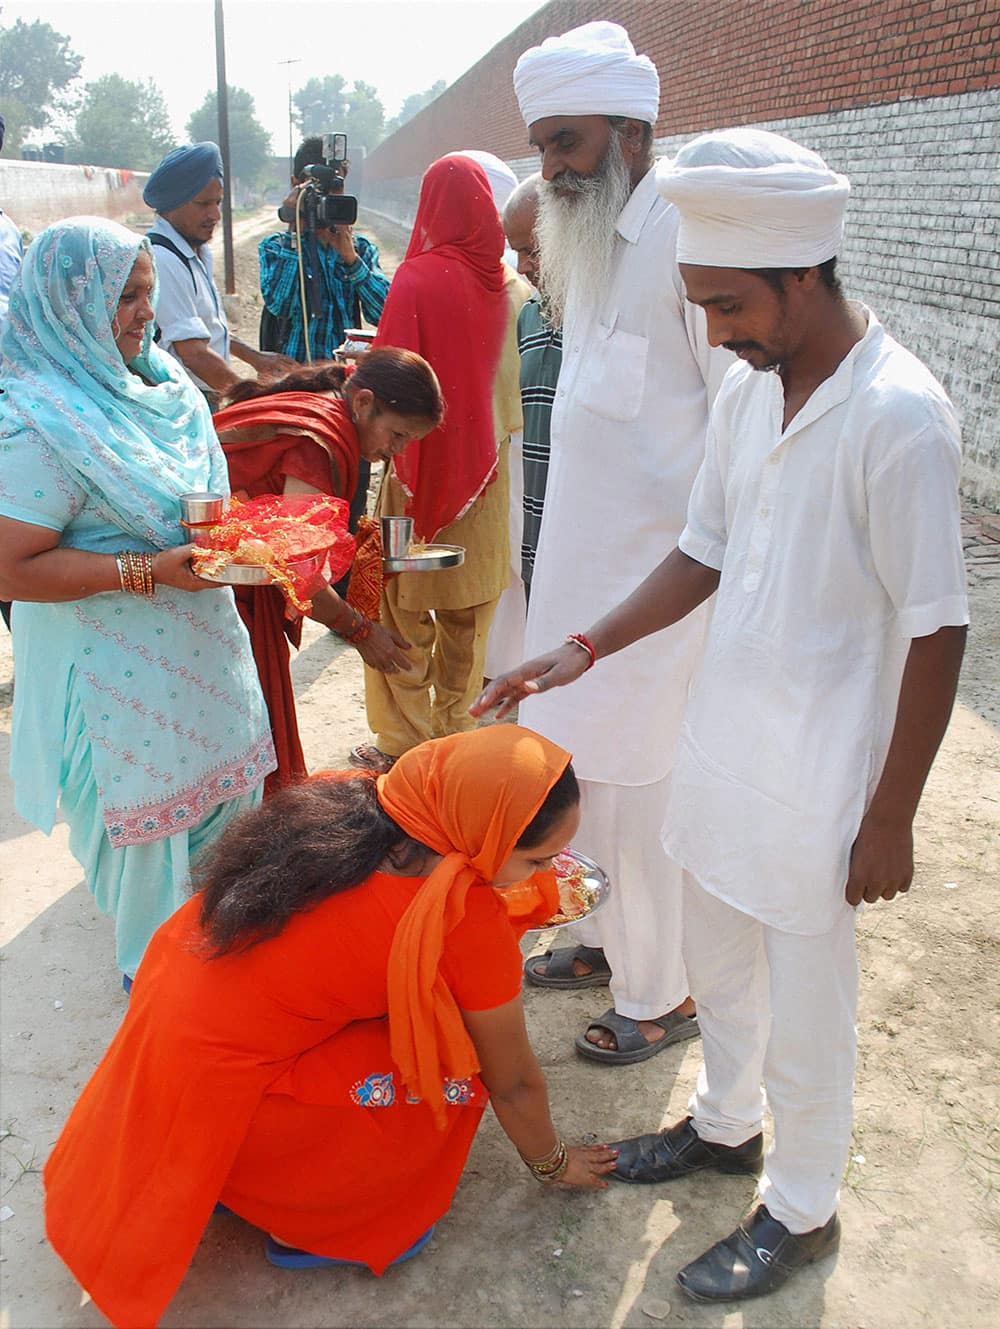 Women meeting their husbands who are prisoners in Central Jail Amritsar as jail authorities made spacial arrangements on the occasion of 'Karva Chauth' in Amritsar.